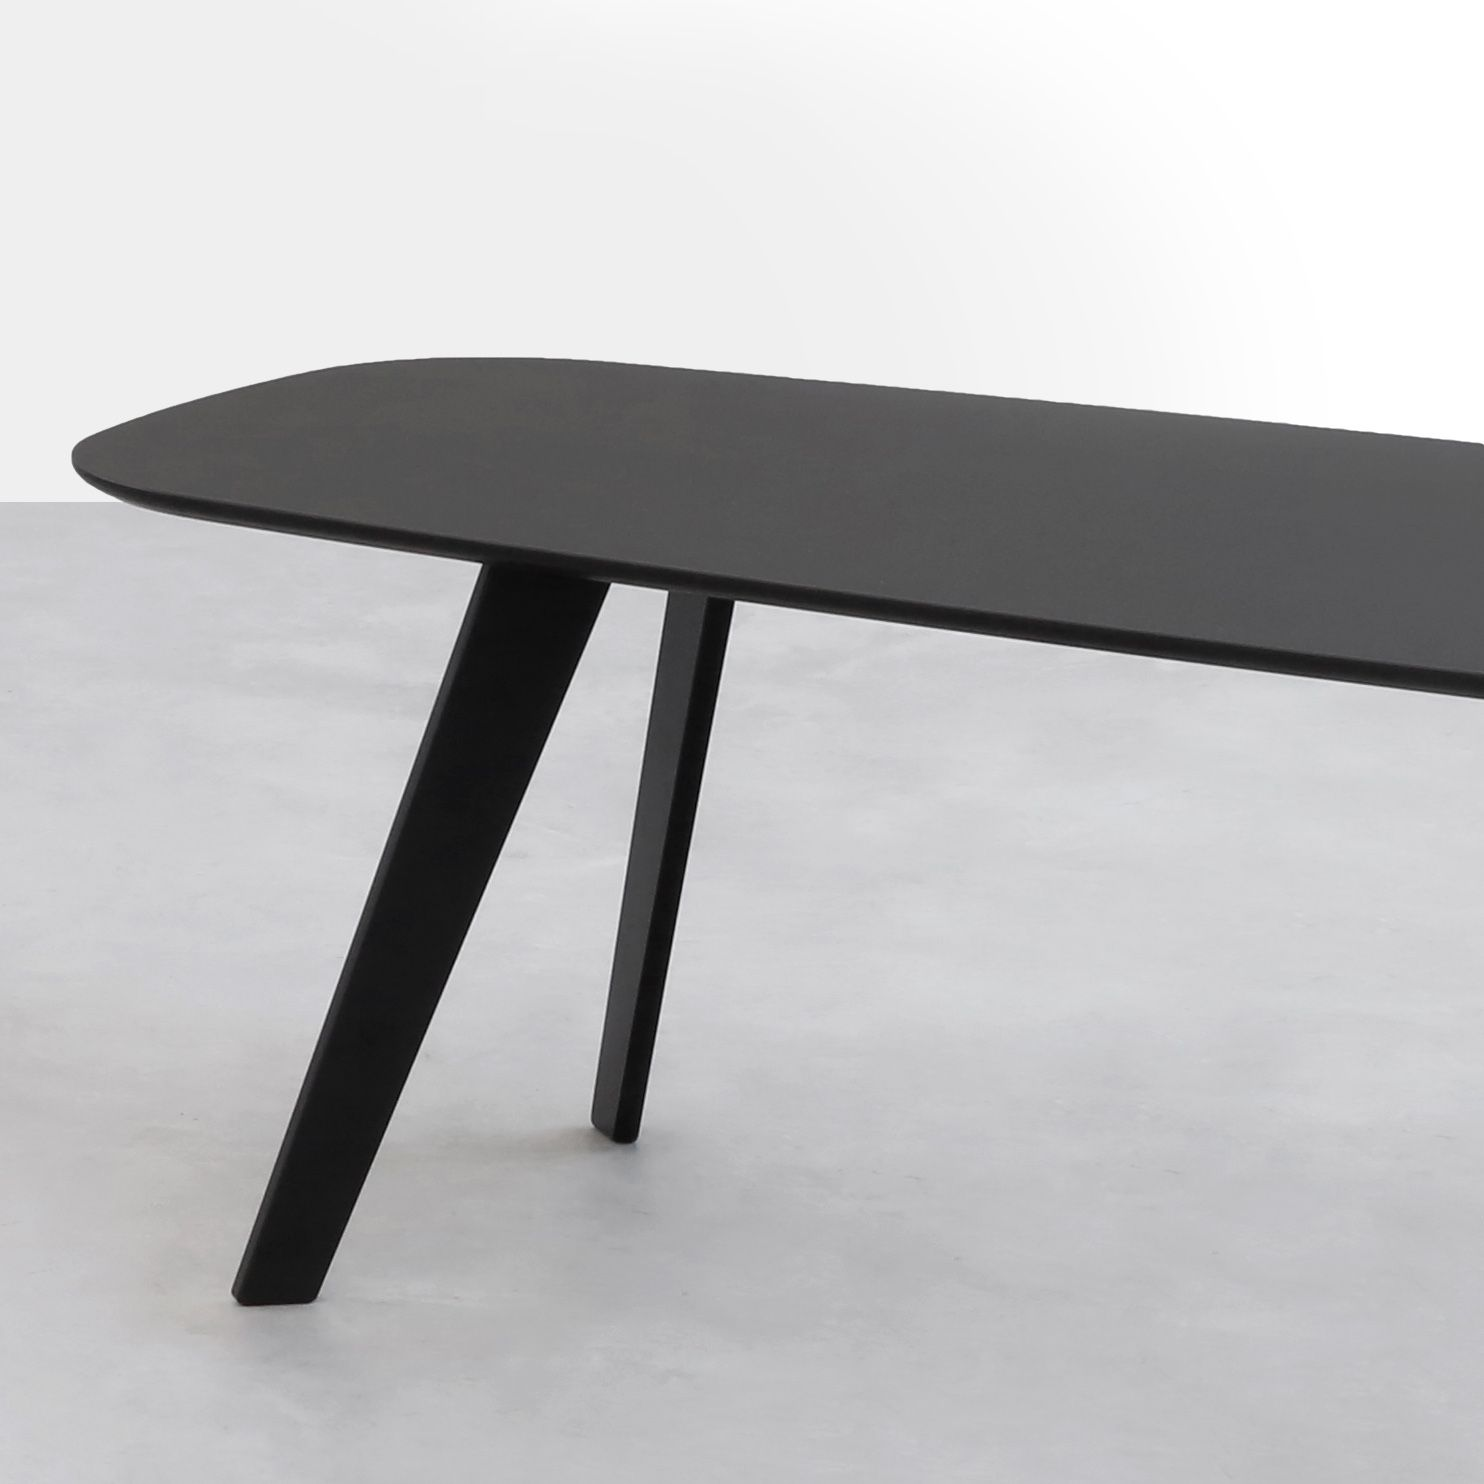 Stua Solapa Tables-Fenix